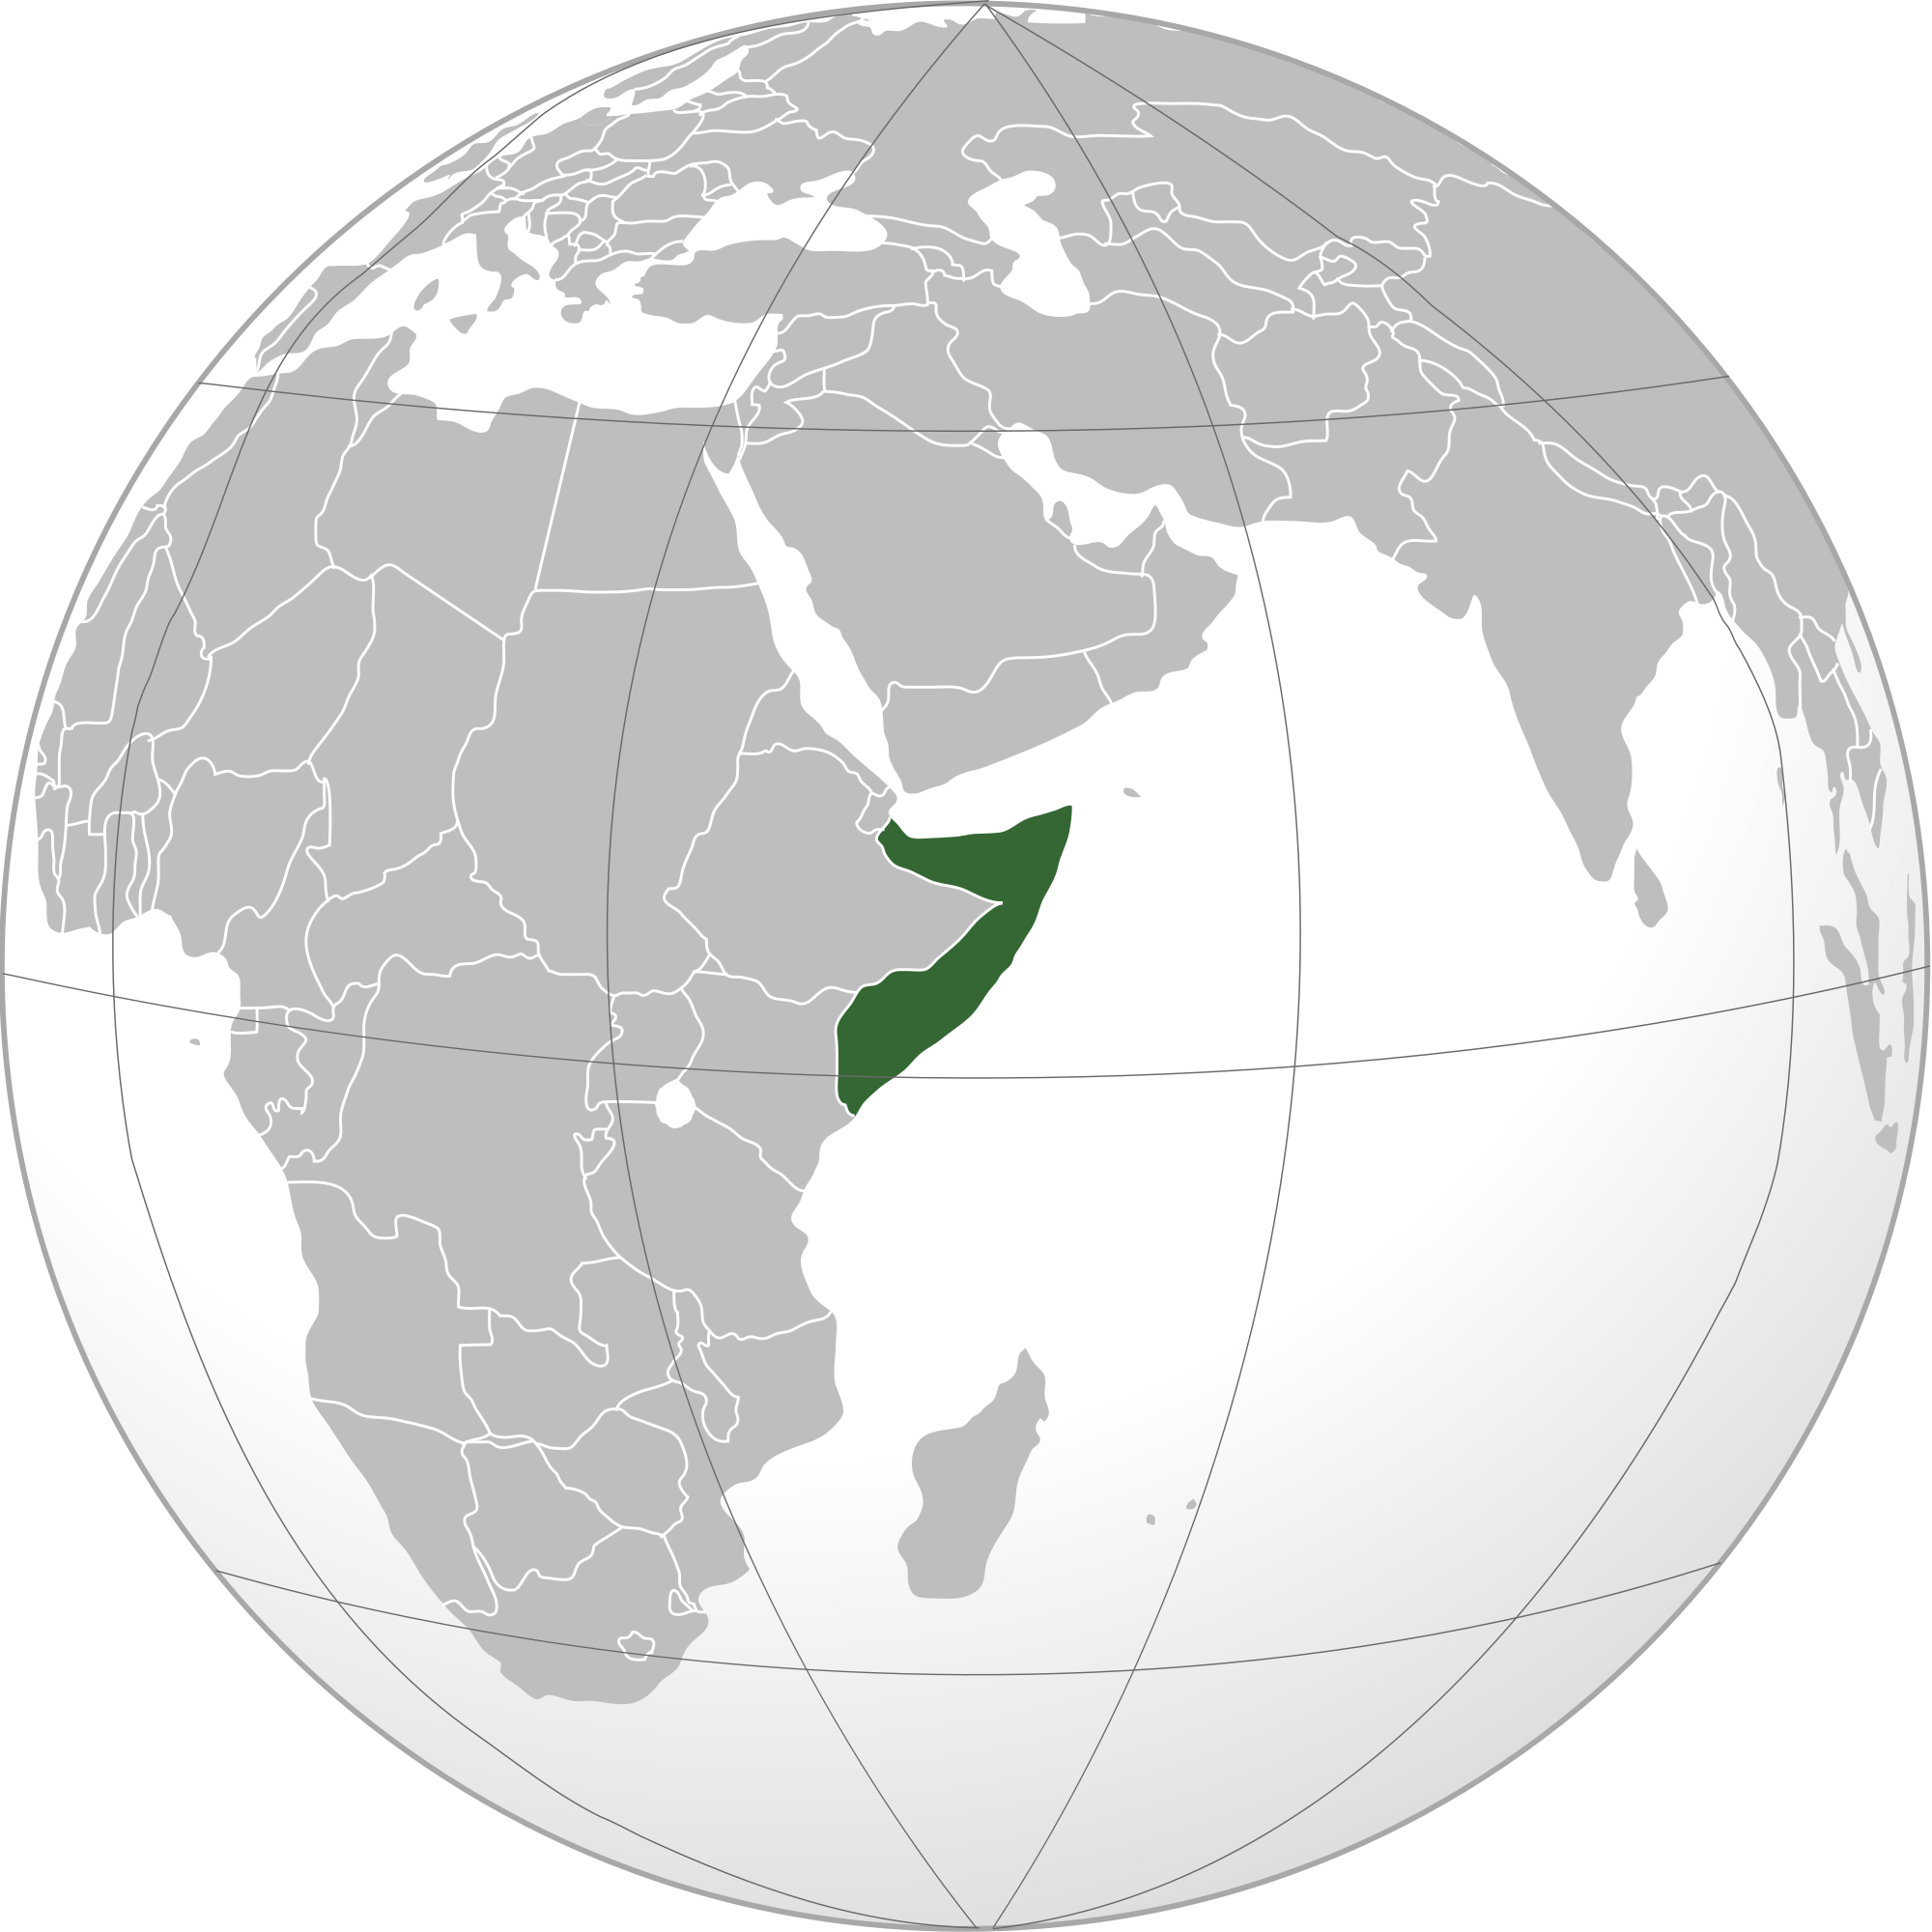 Location of the Somalia in the World Map